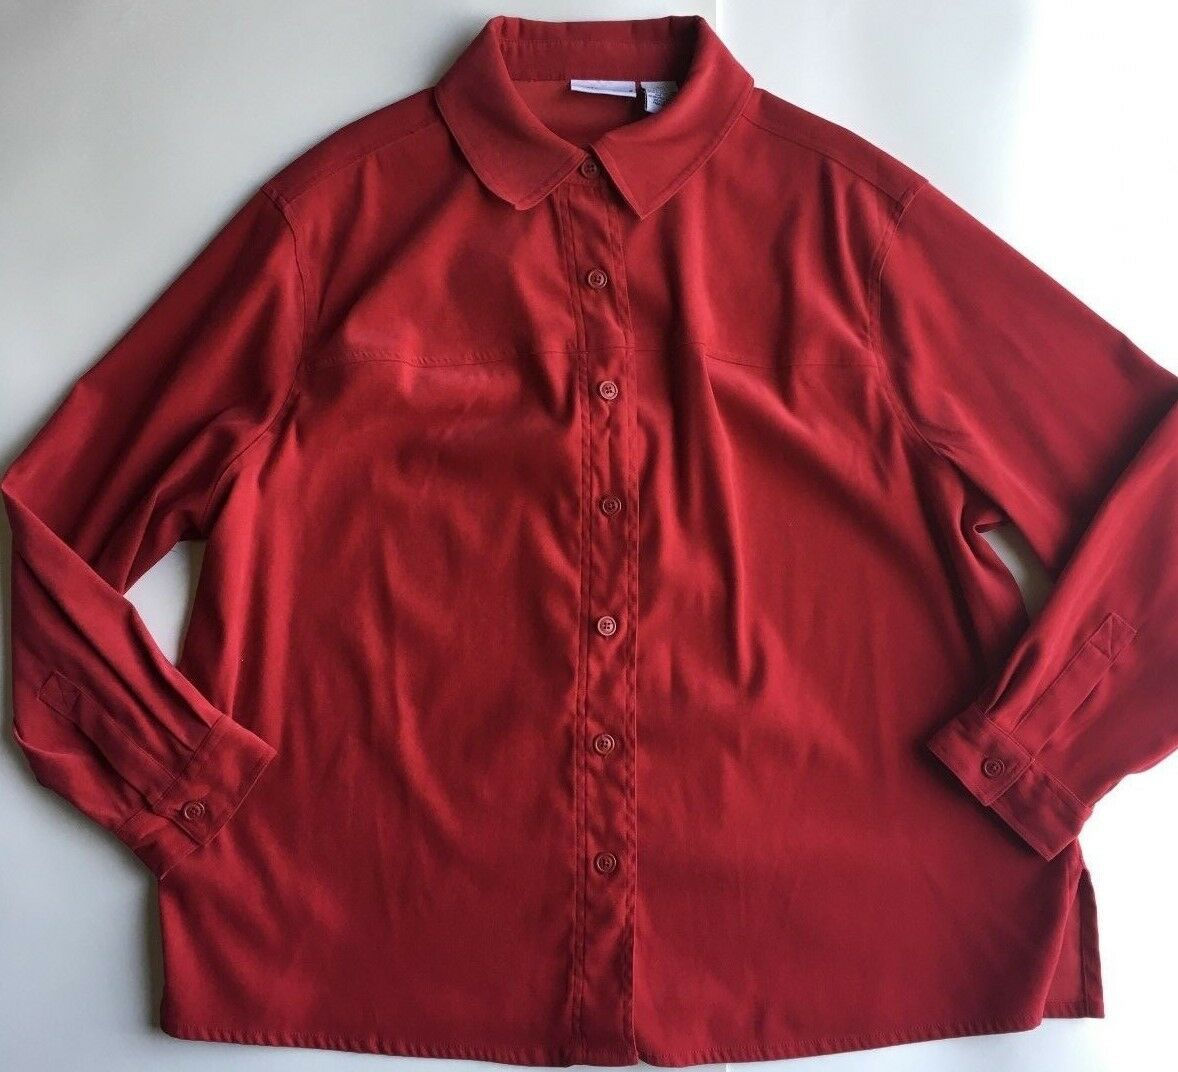 Croft & Barrow Women's Blouse Red Button-Down Long Sleeve Top Plus Size 2X